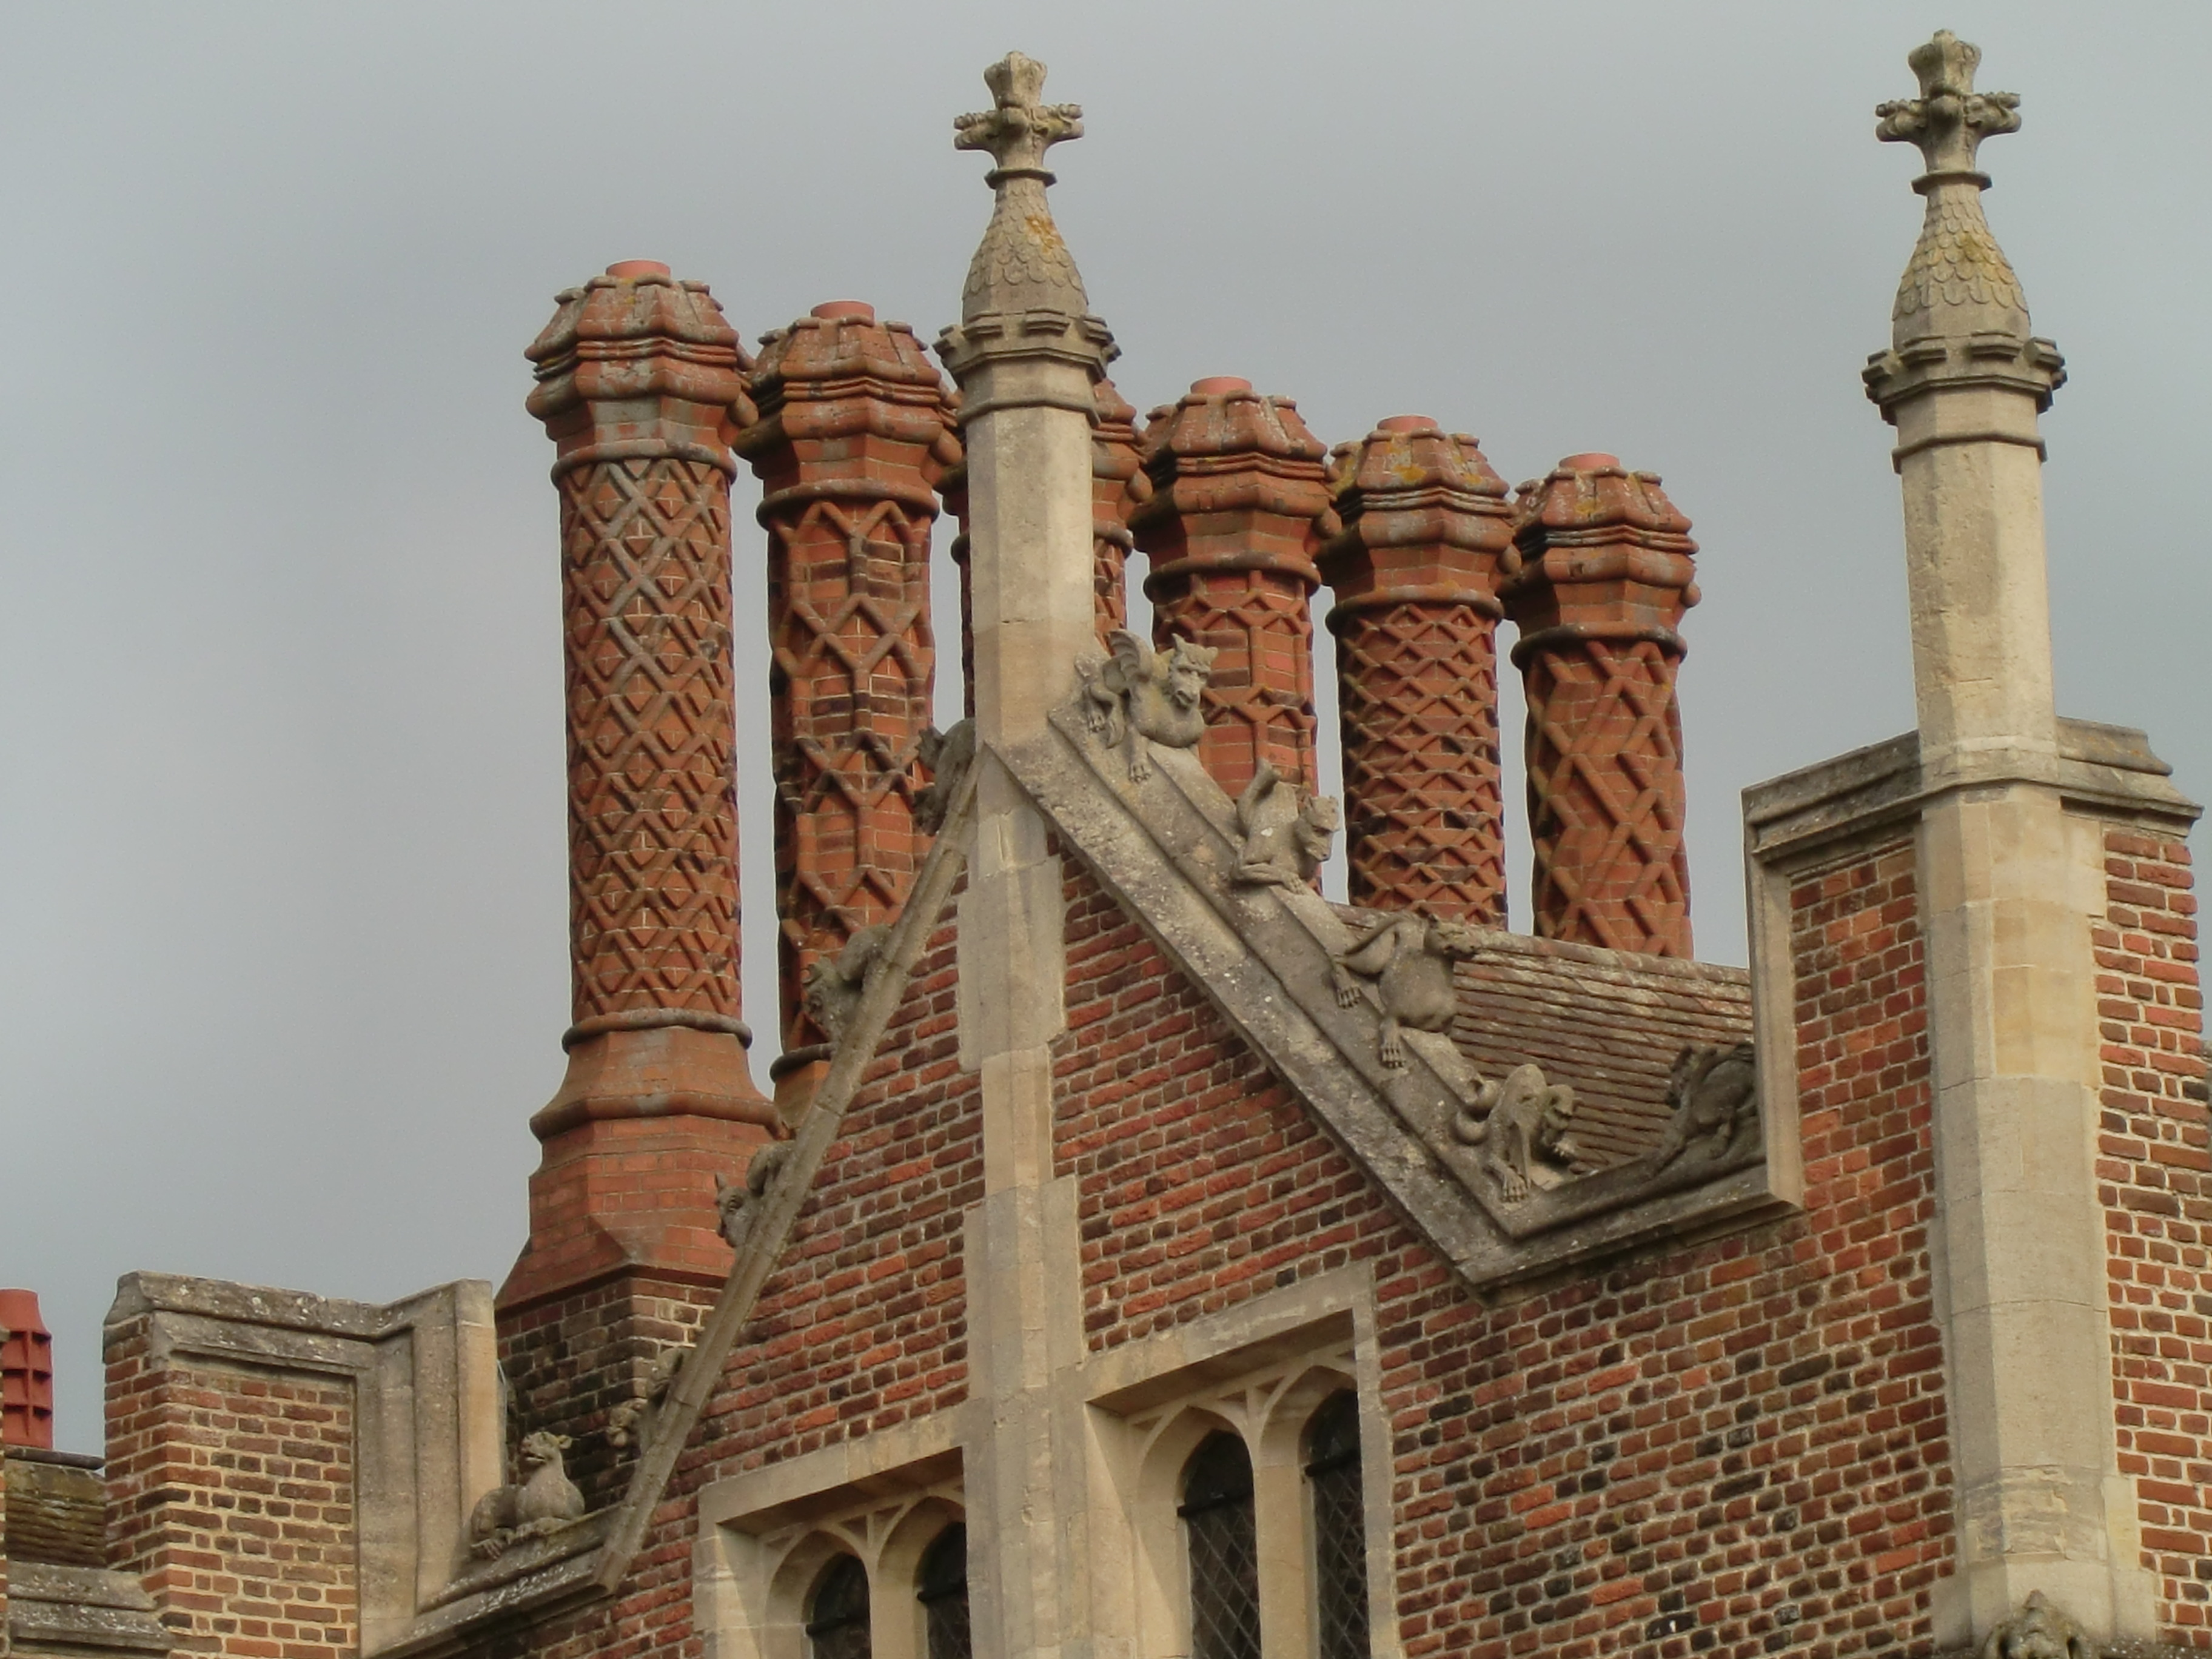 Description chimney and roof detail front of hton court palace